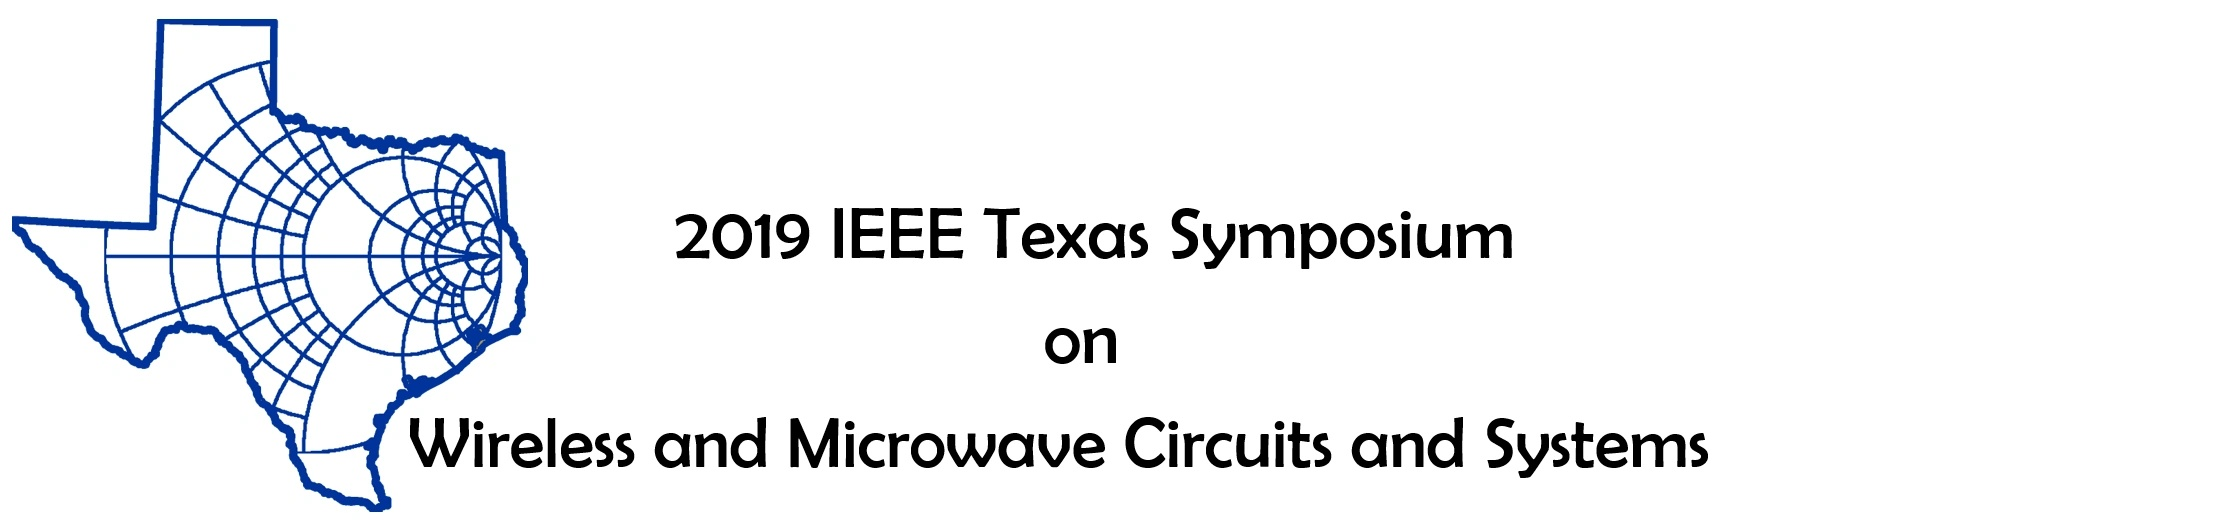 2019 IEEE Texas Symposium Wireless & Microwave Circuits and Syste